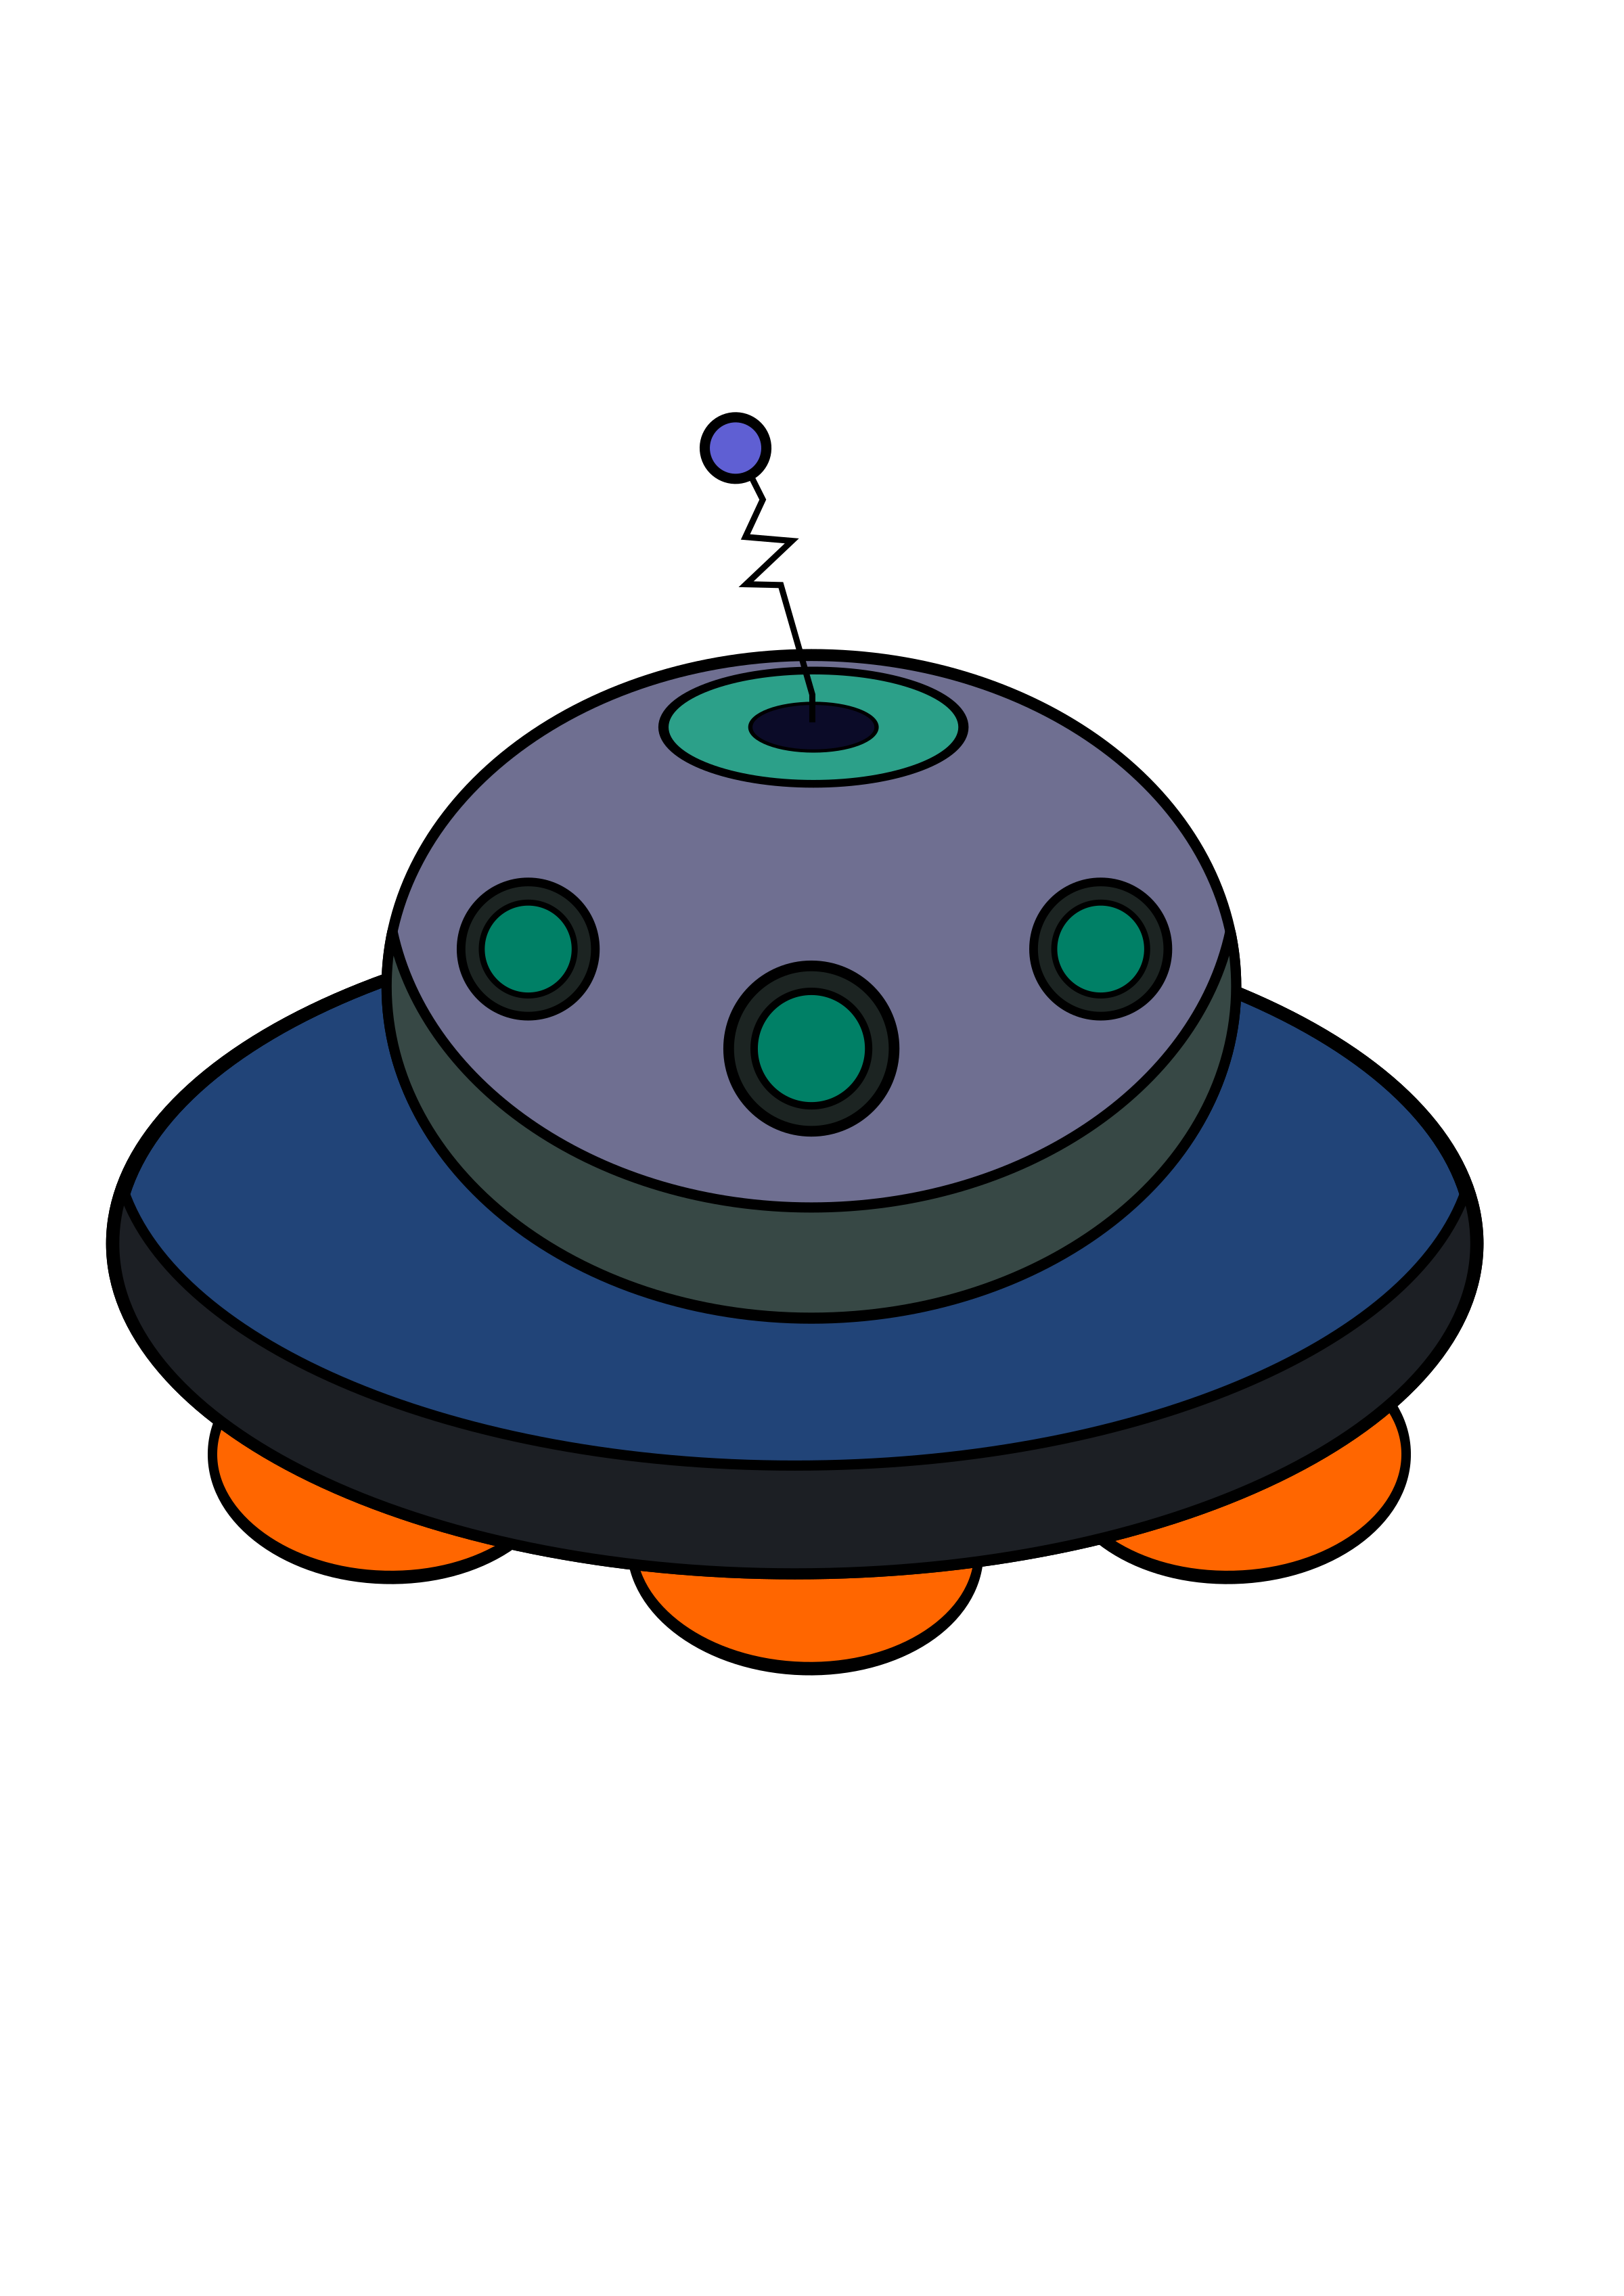 Ufo clipart simple cartoon. Big image png